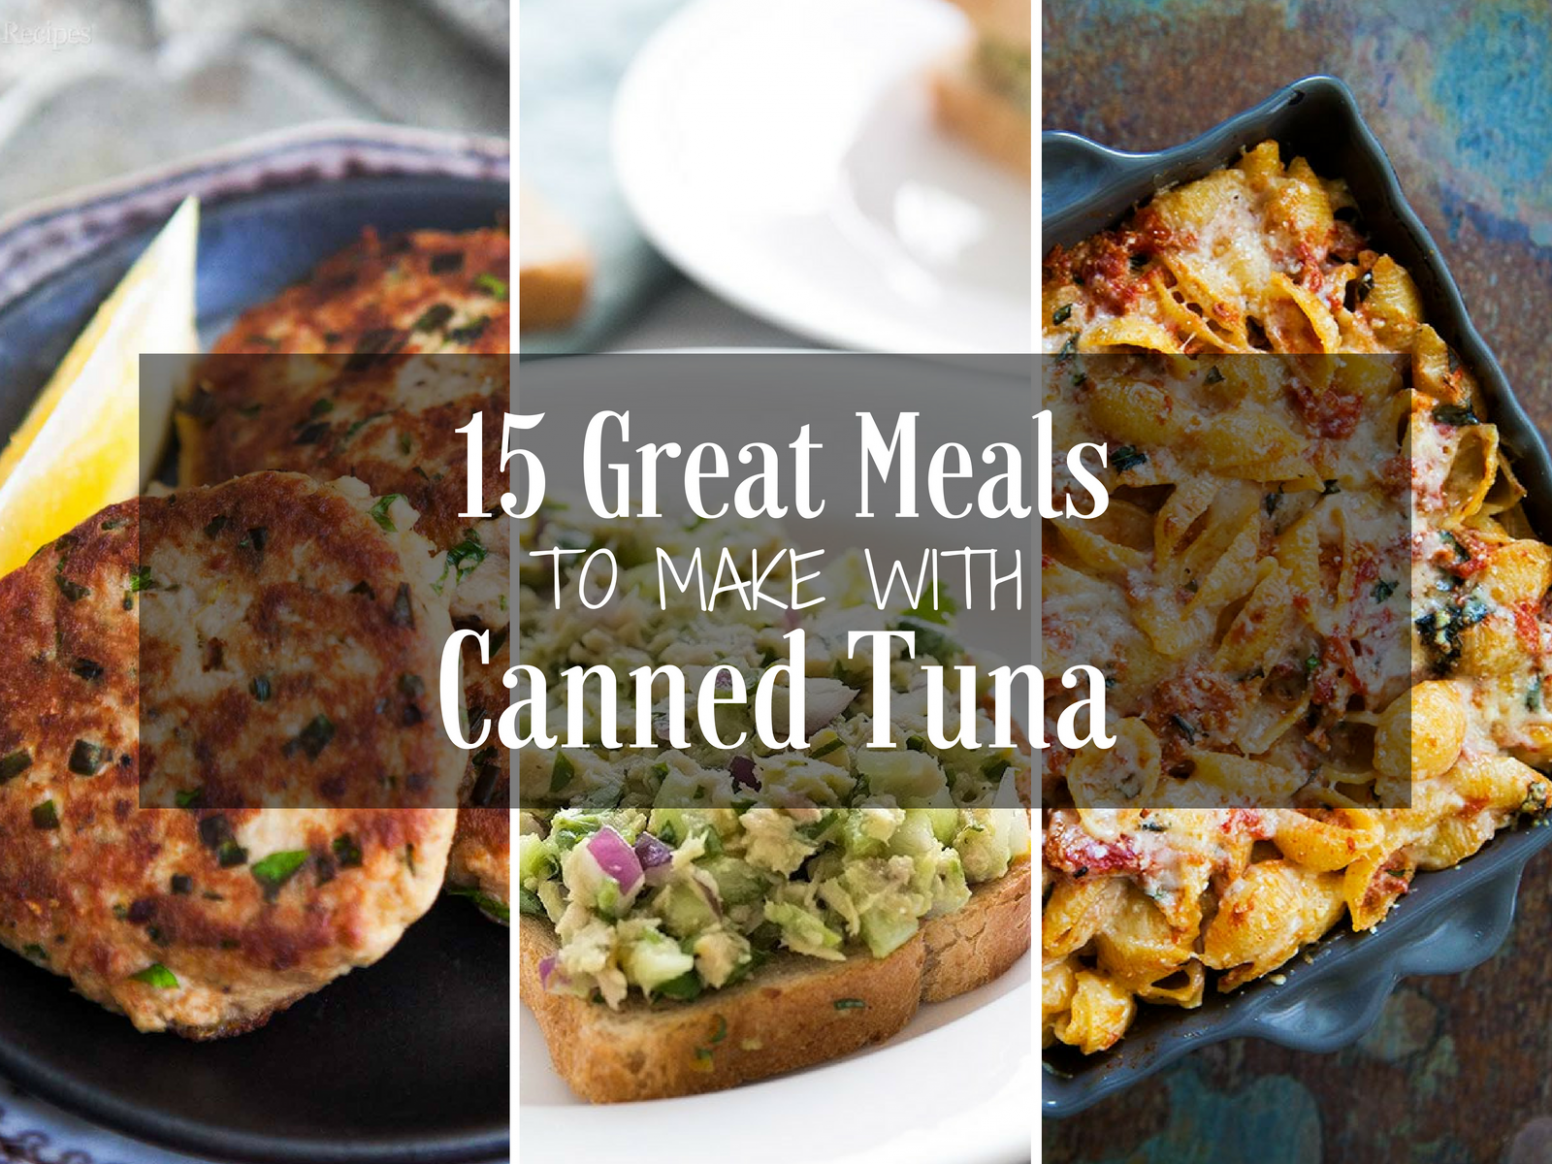 11 Great Meals to Make with Canned Tuna | SimplyRecipes